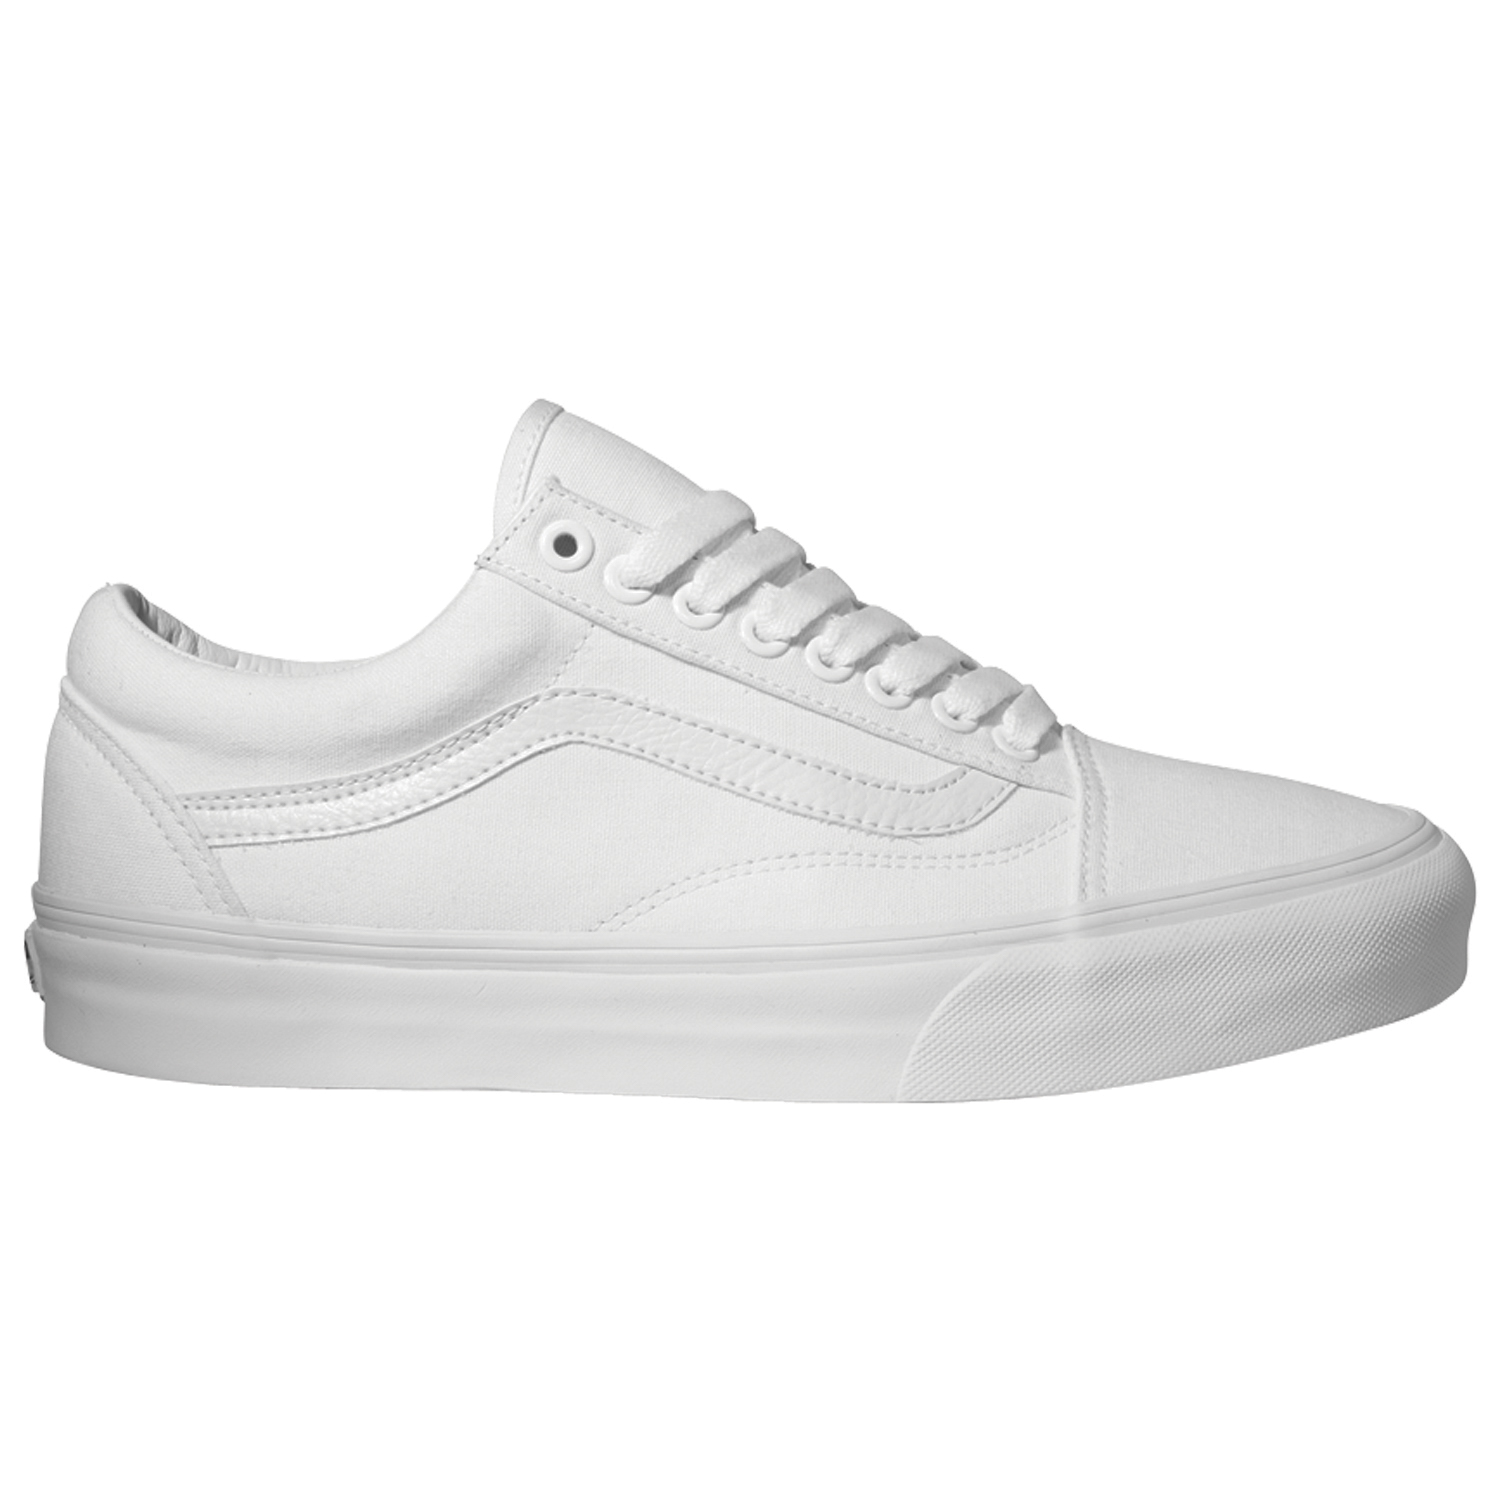 vans-old-skool-white-119-90